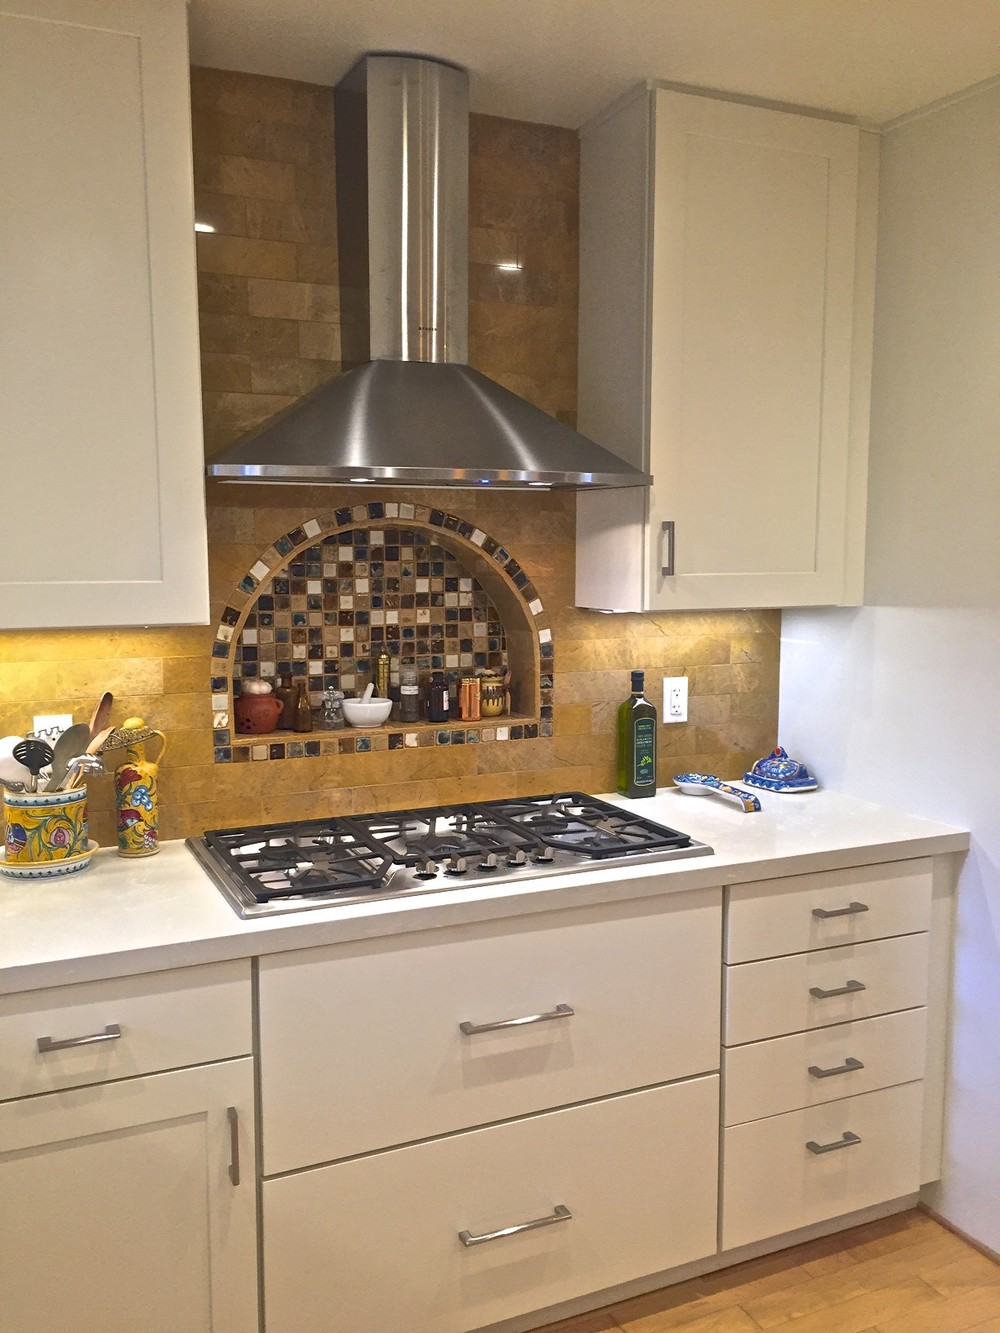 Recessed niche behind gas cook-top focuses the heart of the kitchen to the cooking area.